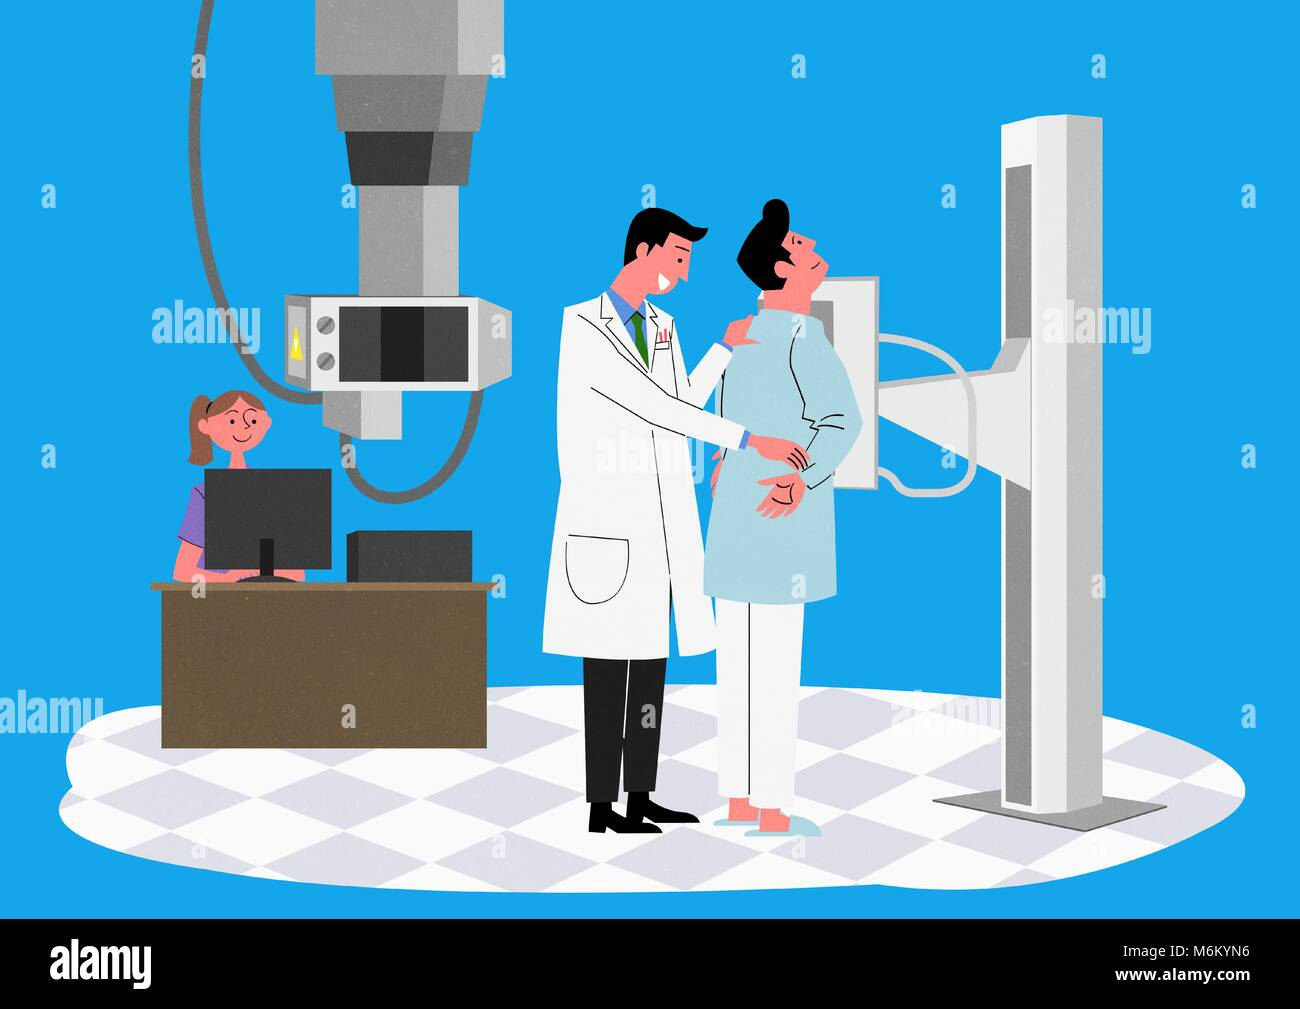 Illustration for a full medical examination, have regular checkups for your health. 004 - Stock Image